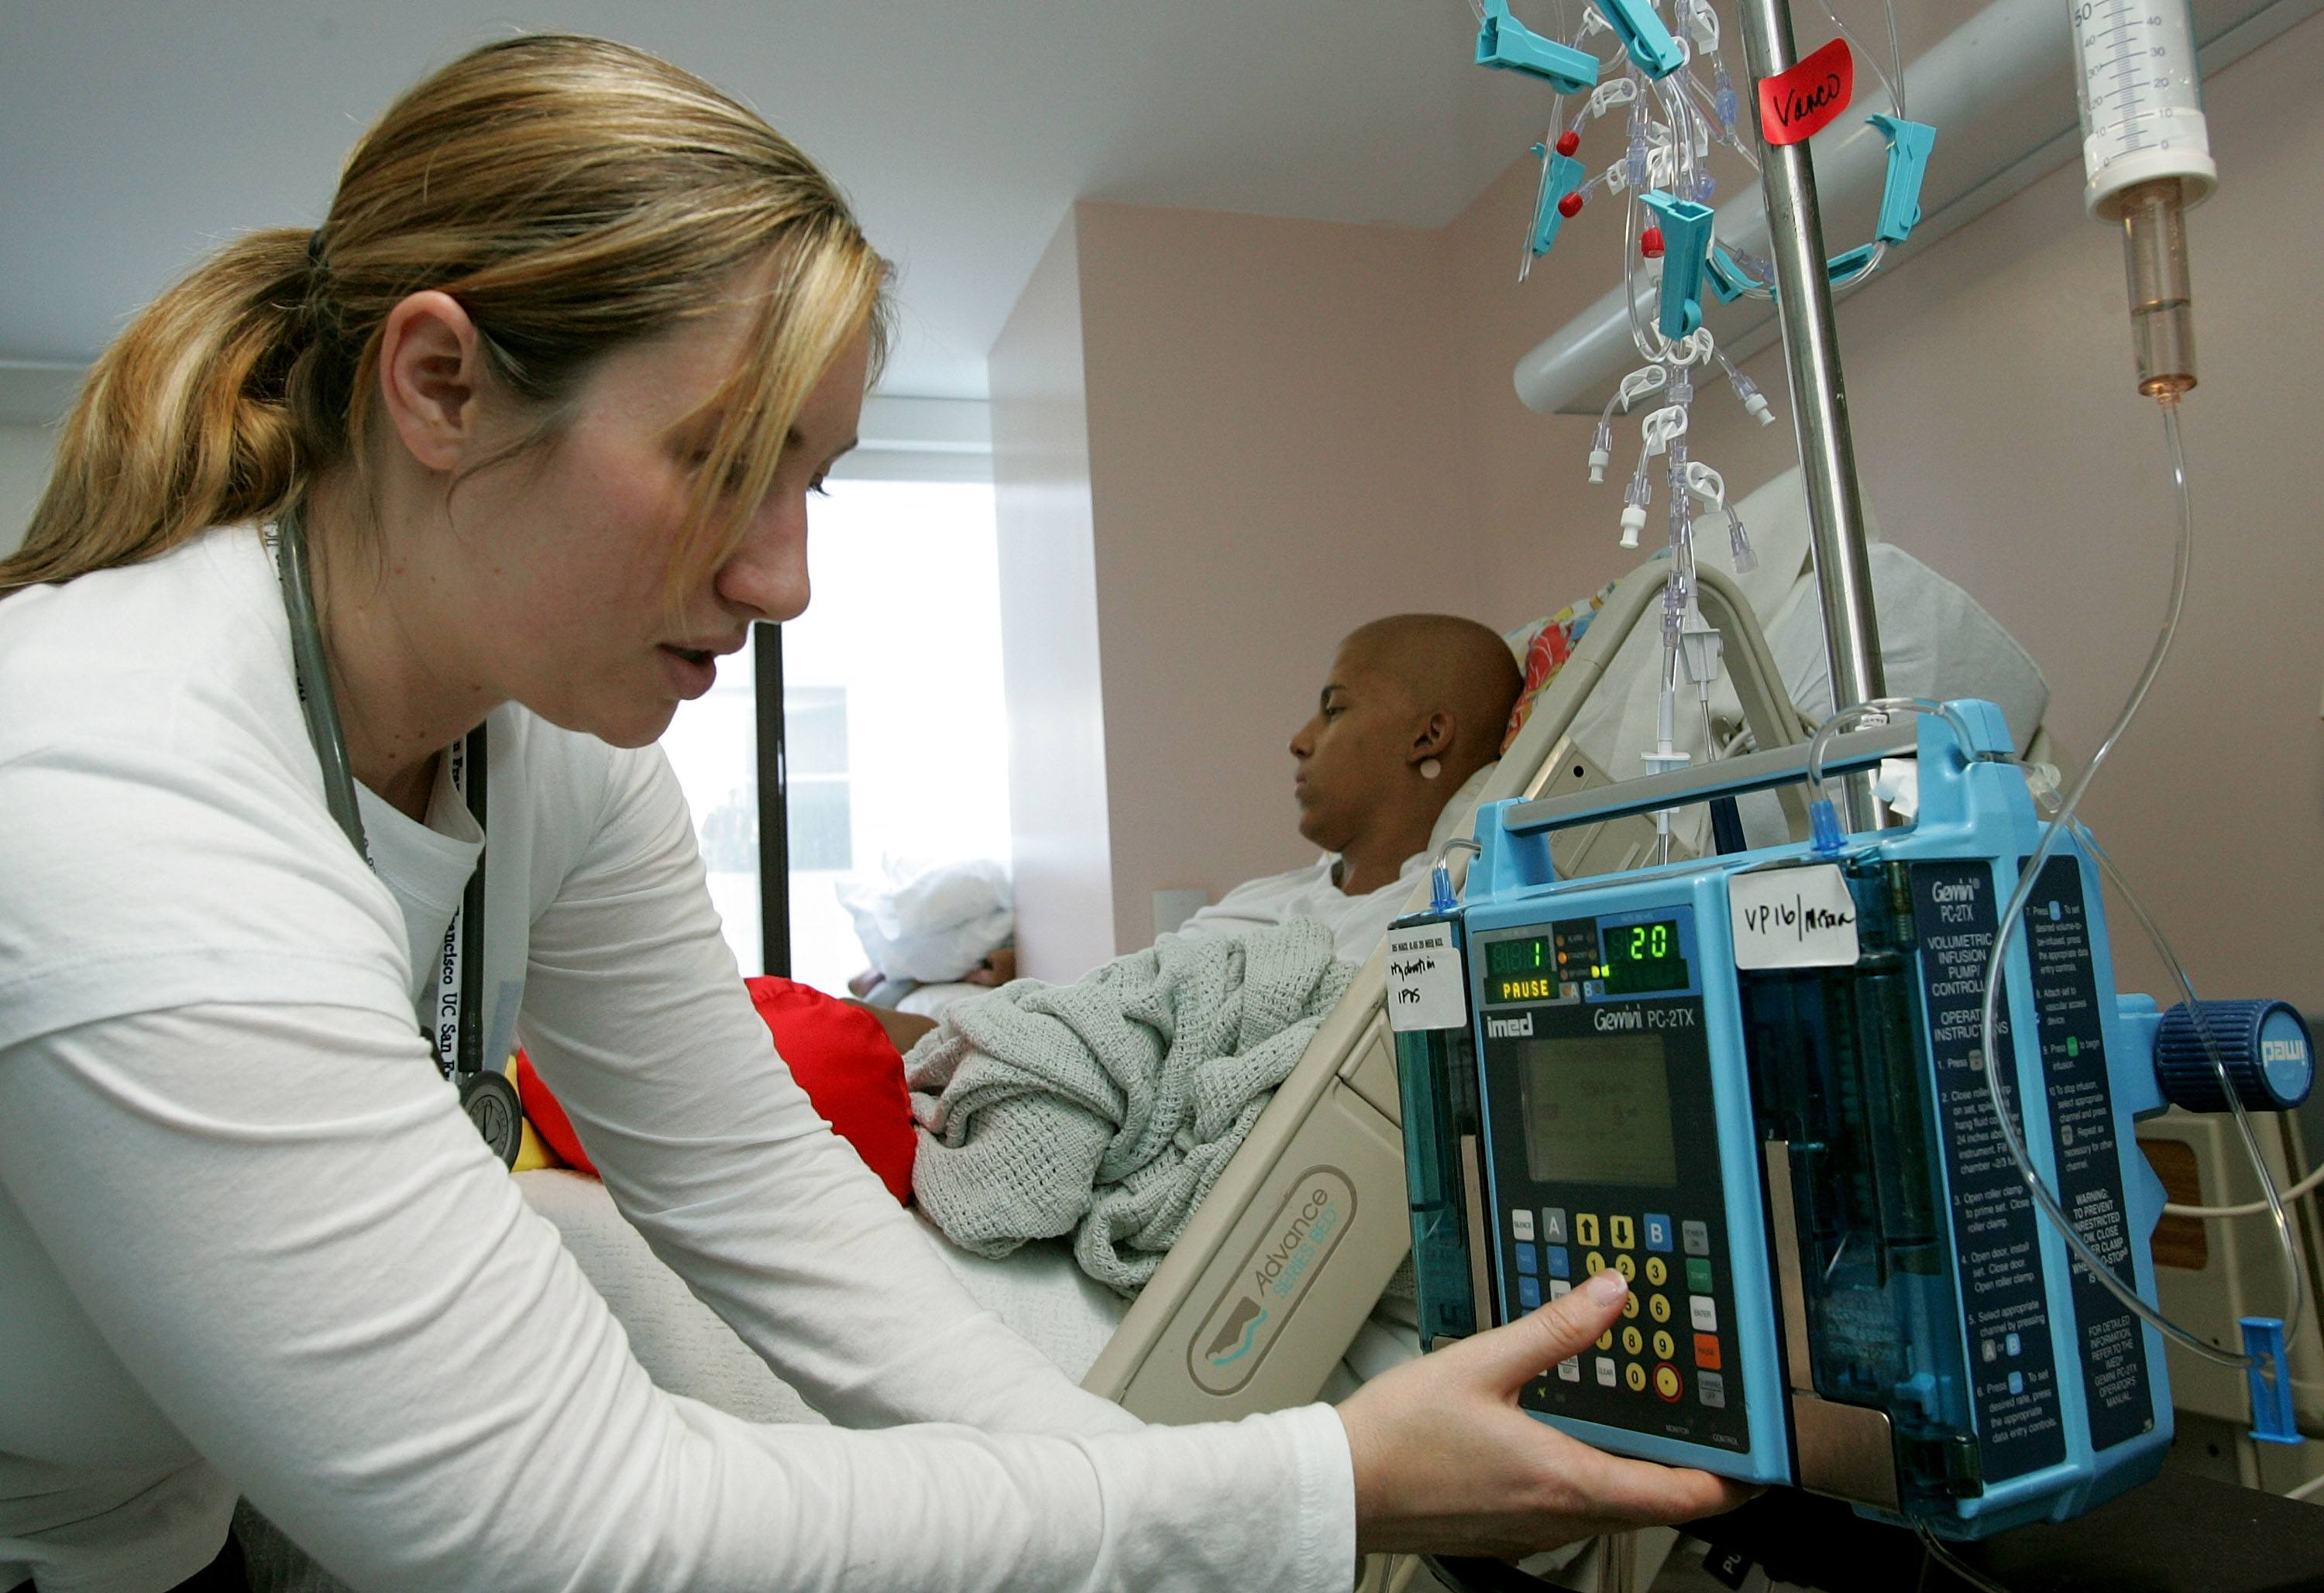 Registered nurse Autumn Small adjusts an IV drip machine for an eighteen-year-old cancer patient